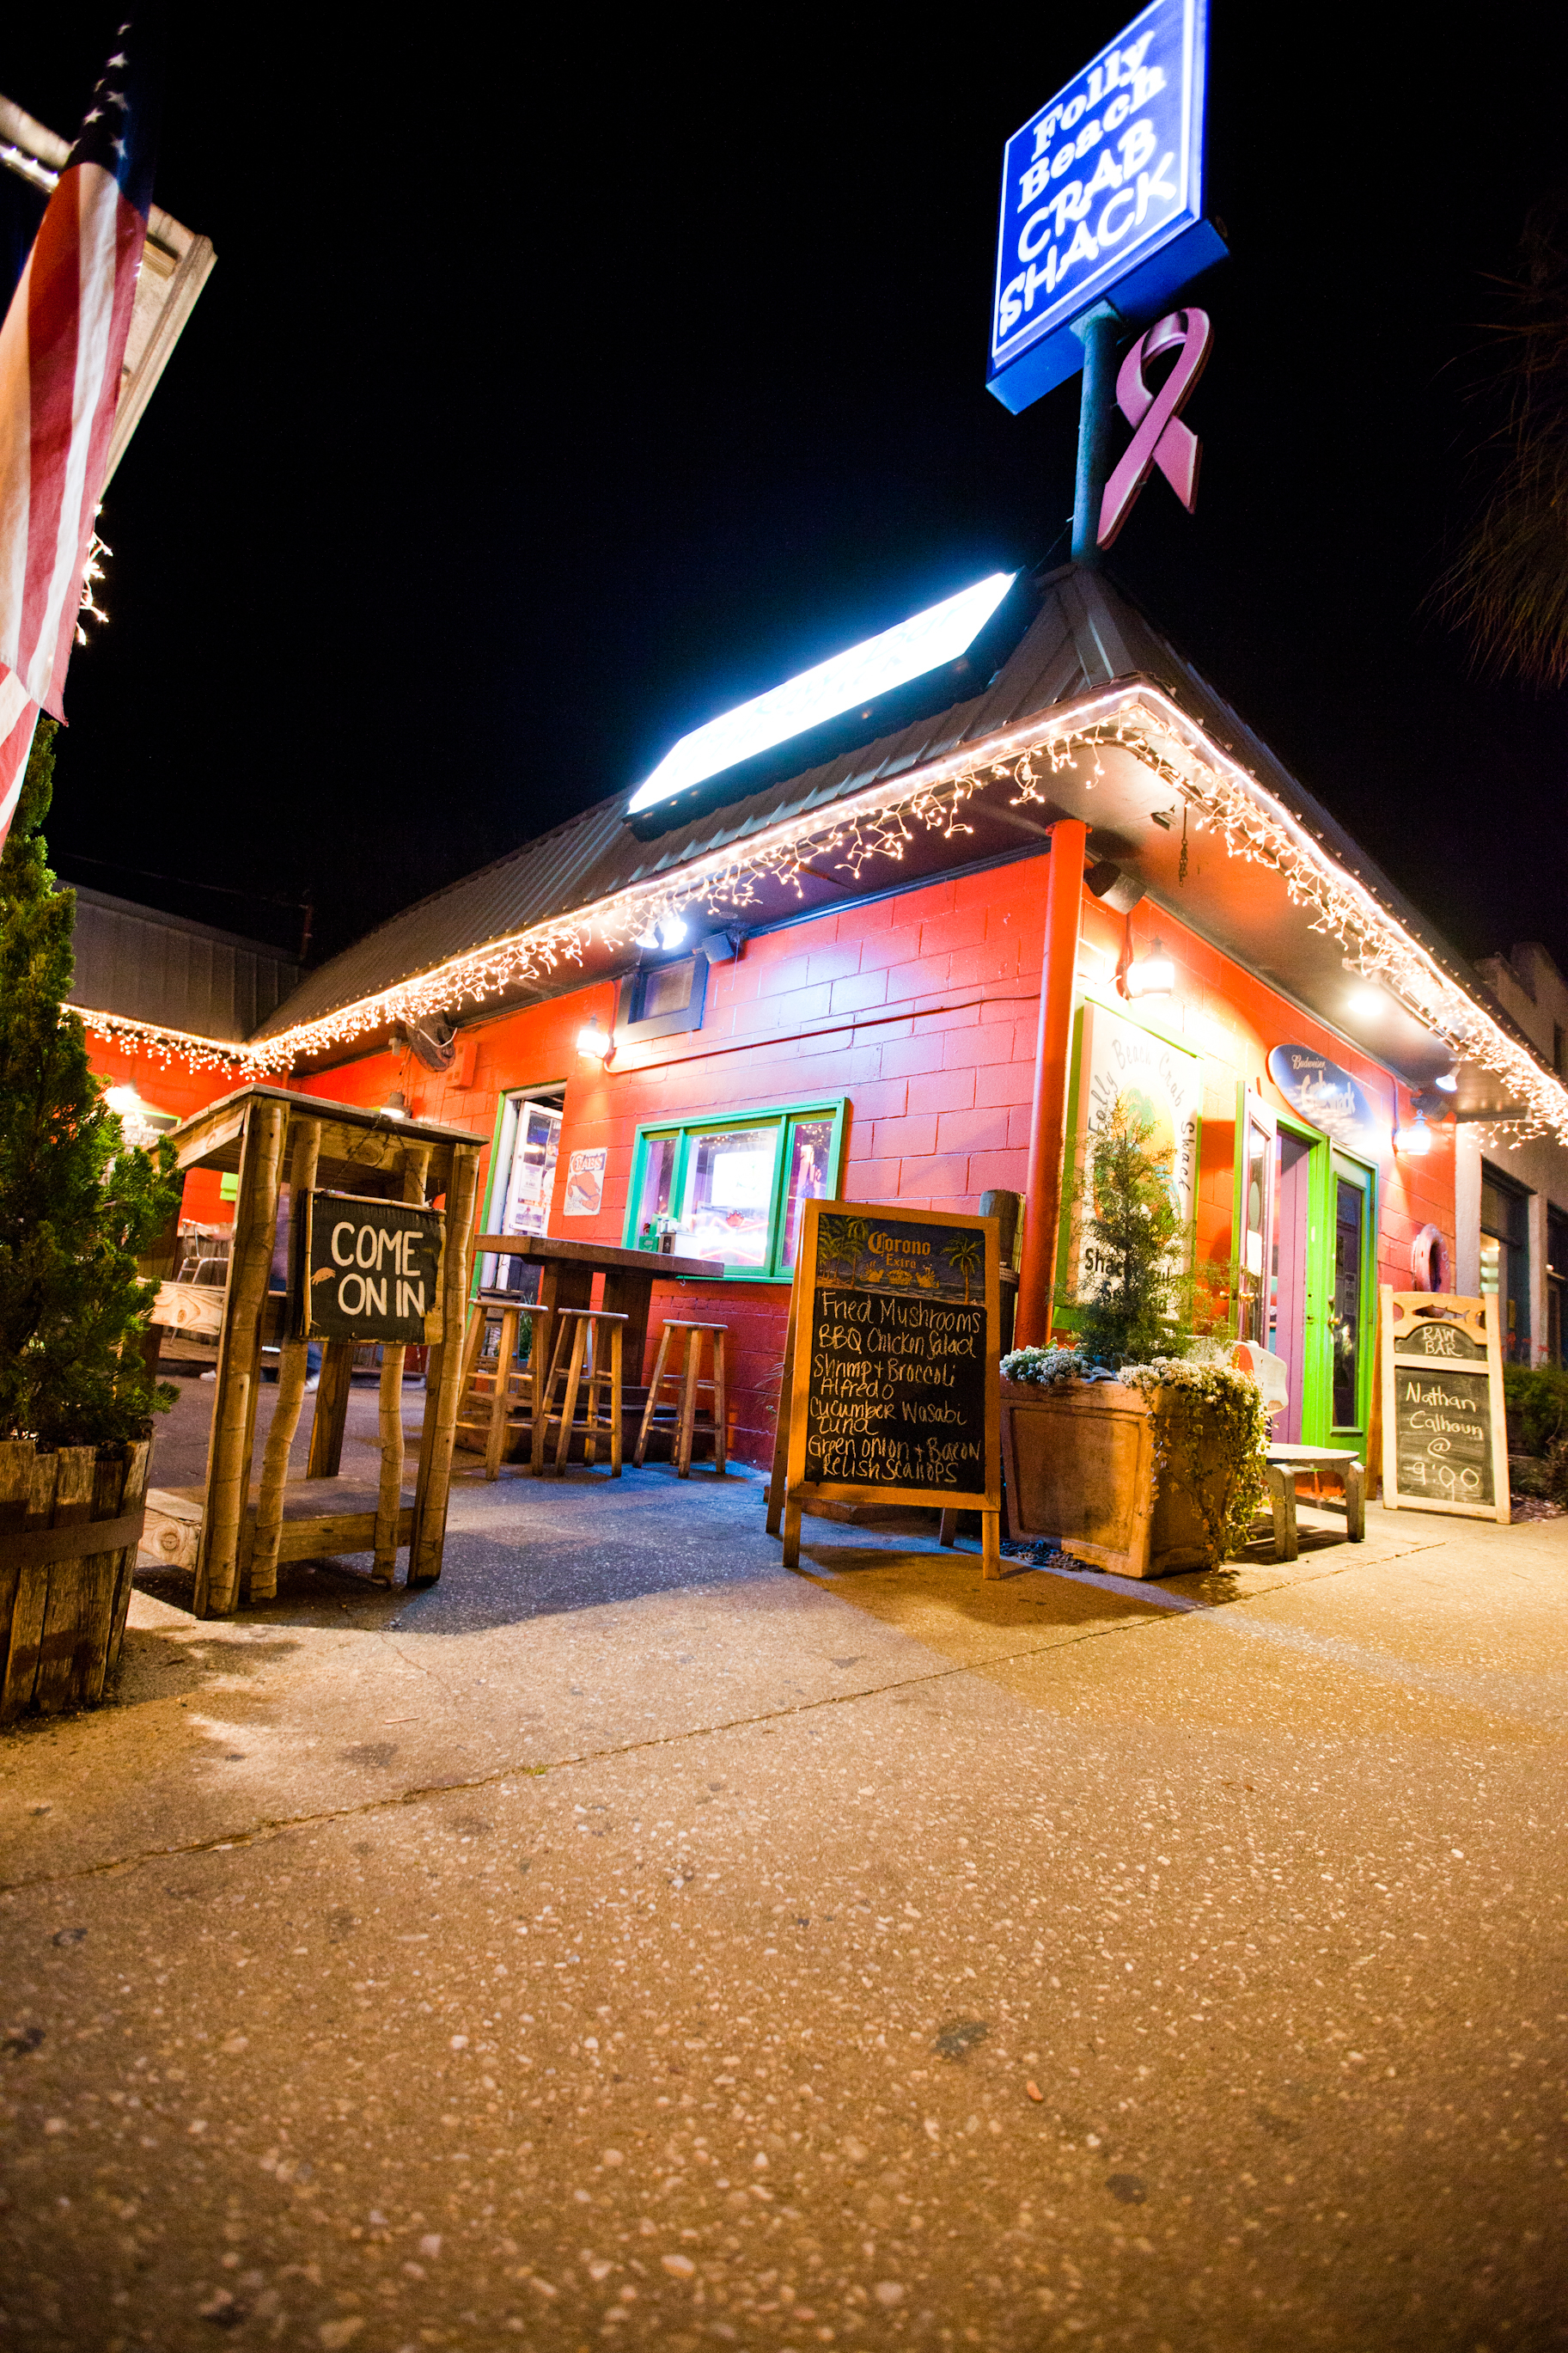 The Crab Shack image 43